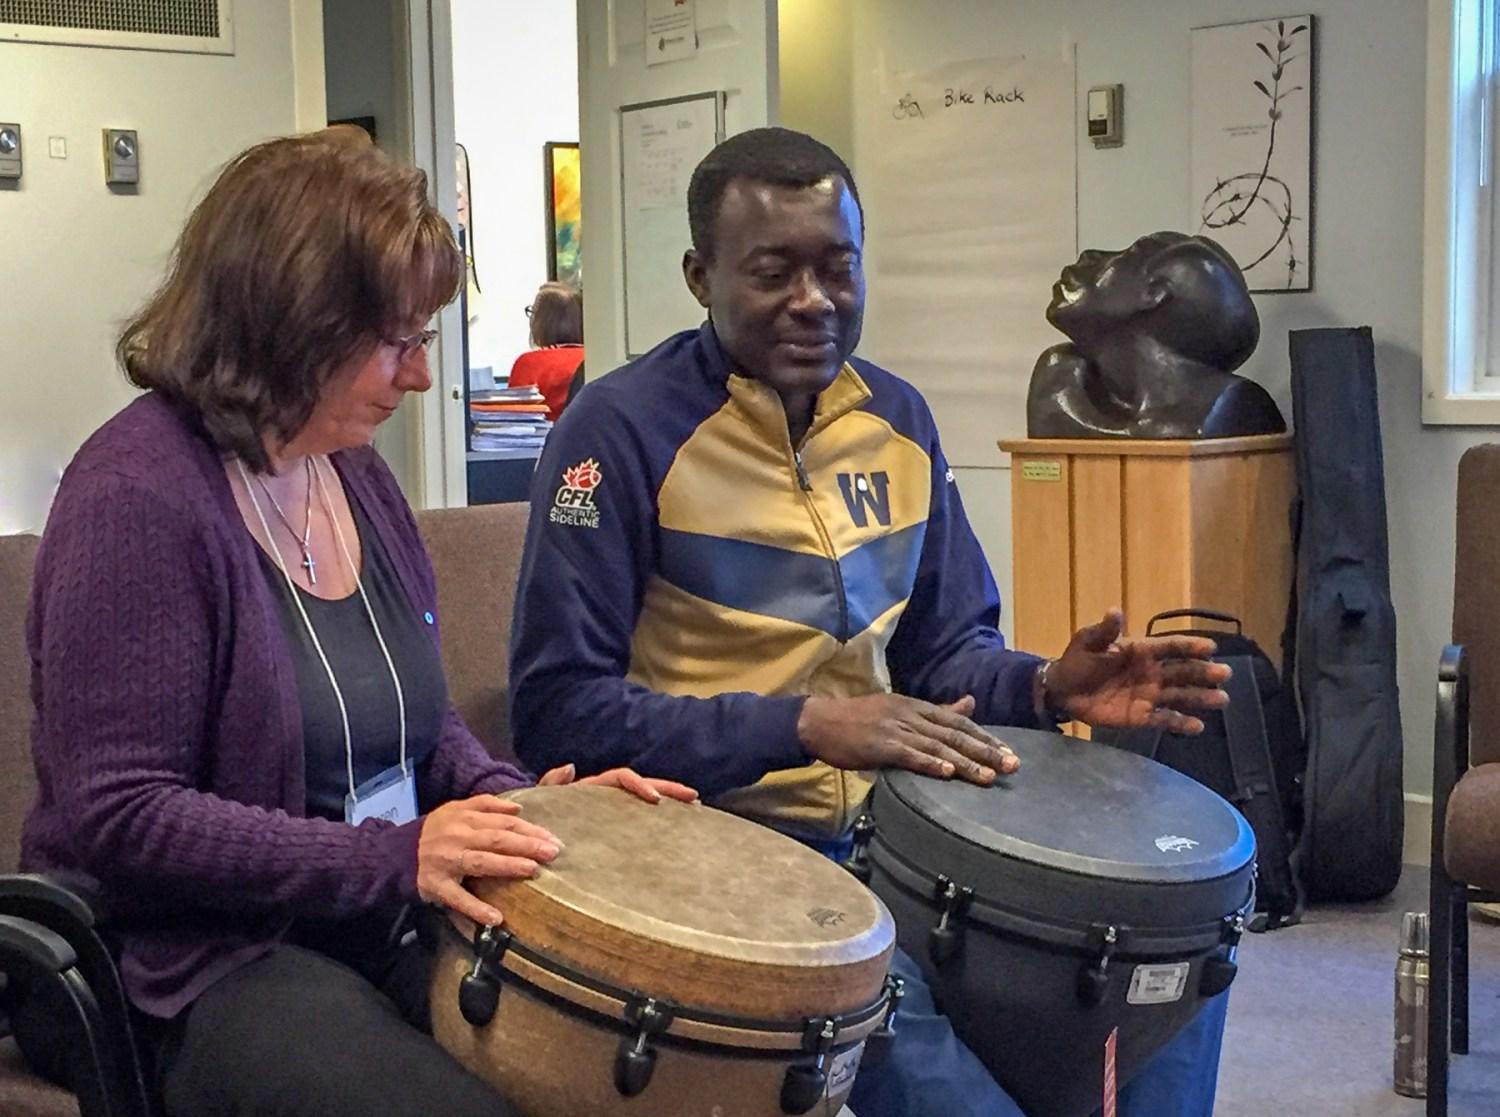 Karen drumming with Raymond.